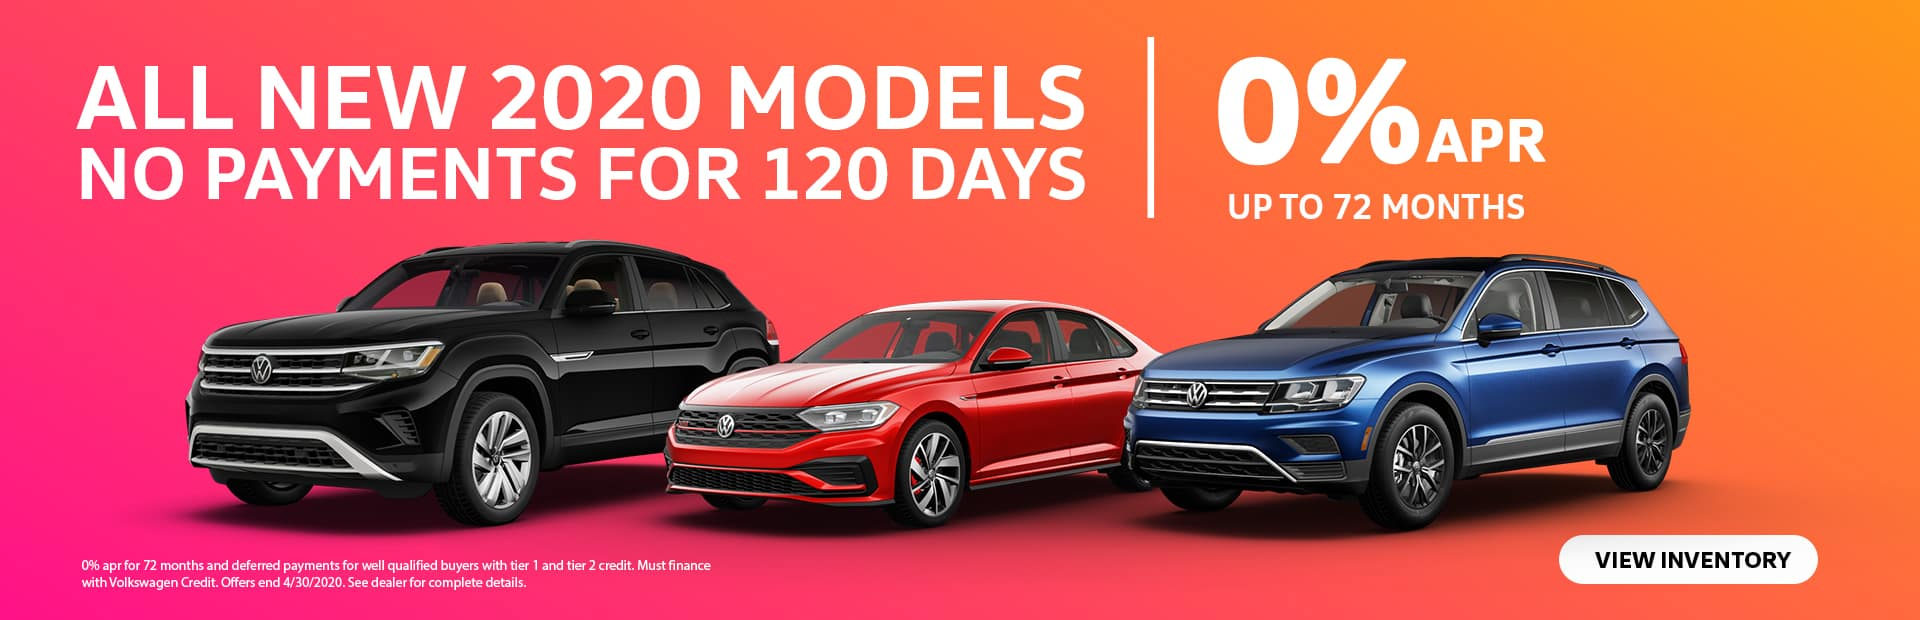 0apr-vw-no-payments-for-120-days-offer